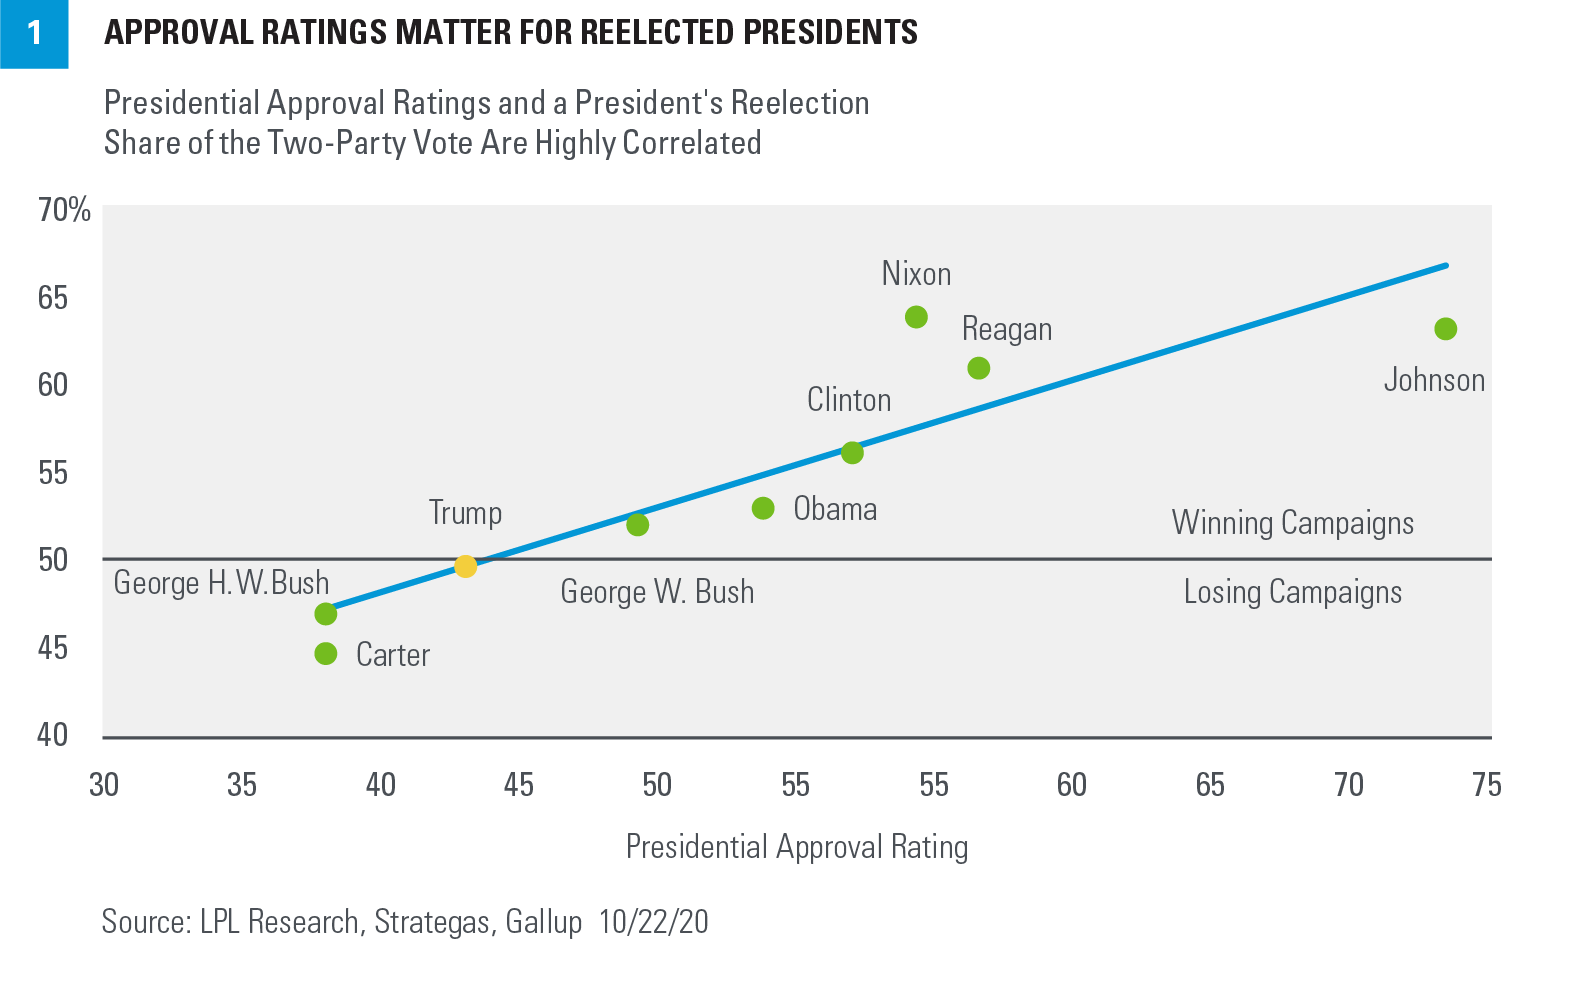 Chart - Approval Ratings Matter for Reelected Presidents